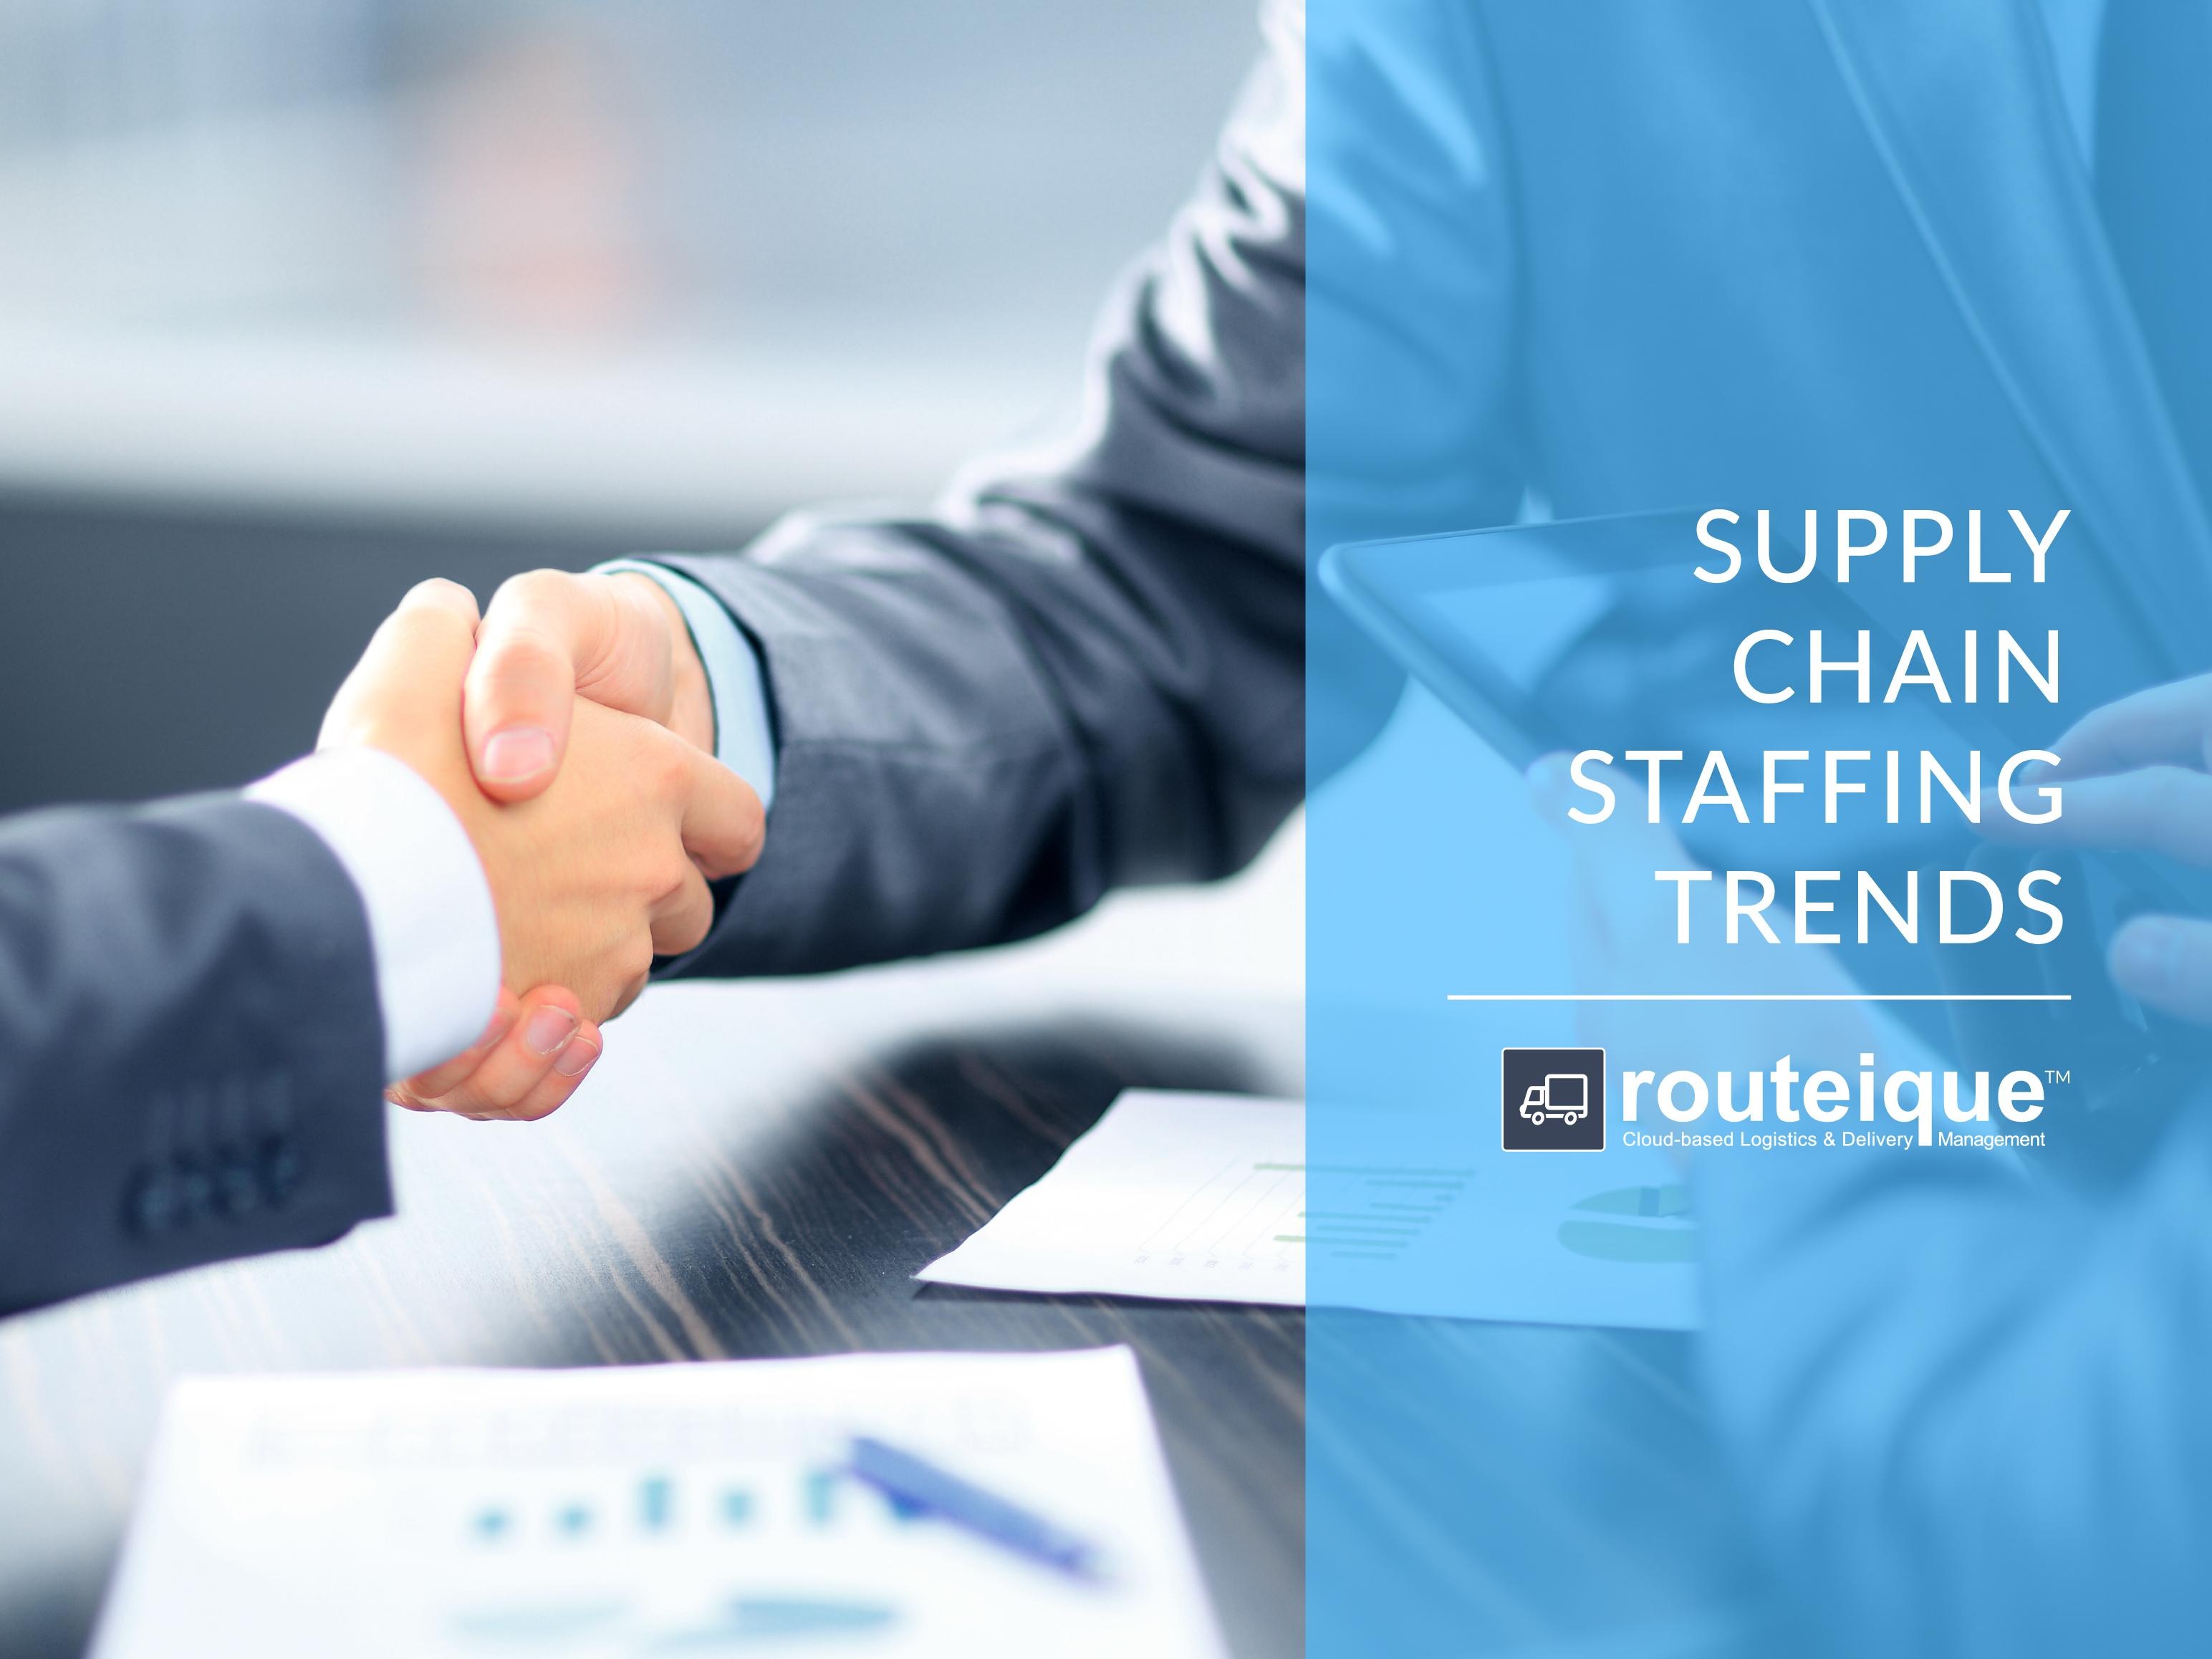 Routeique Supply Chain Staffing Trends Blog Banner Image